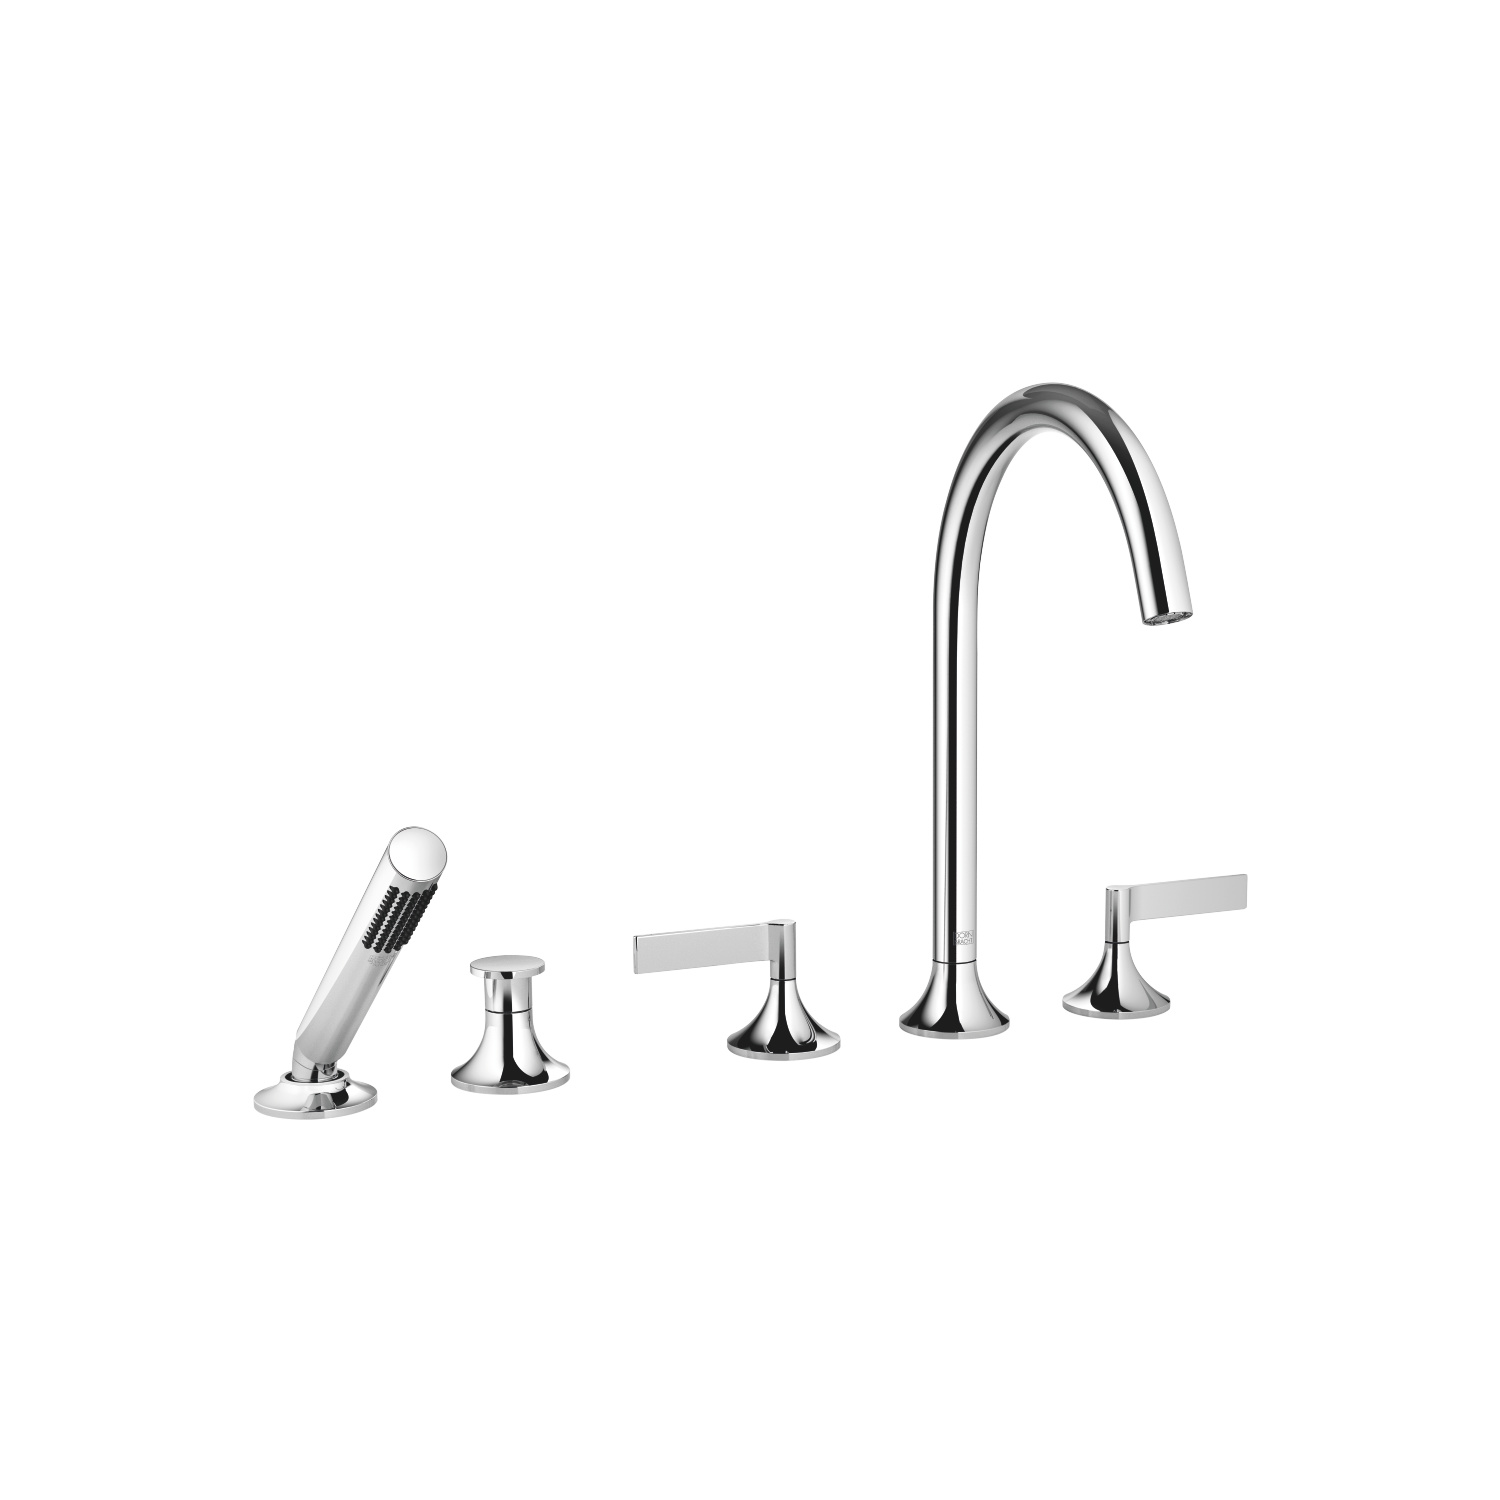 Five hole tub set for deck-mounted tub installation with diverter - polished chrome